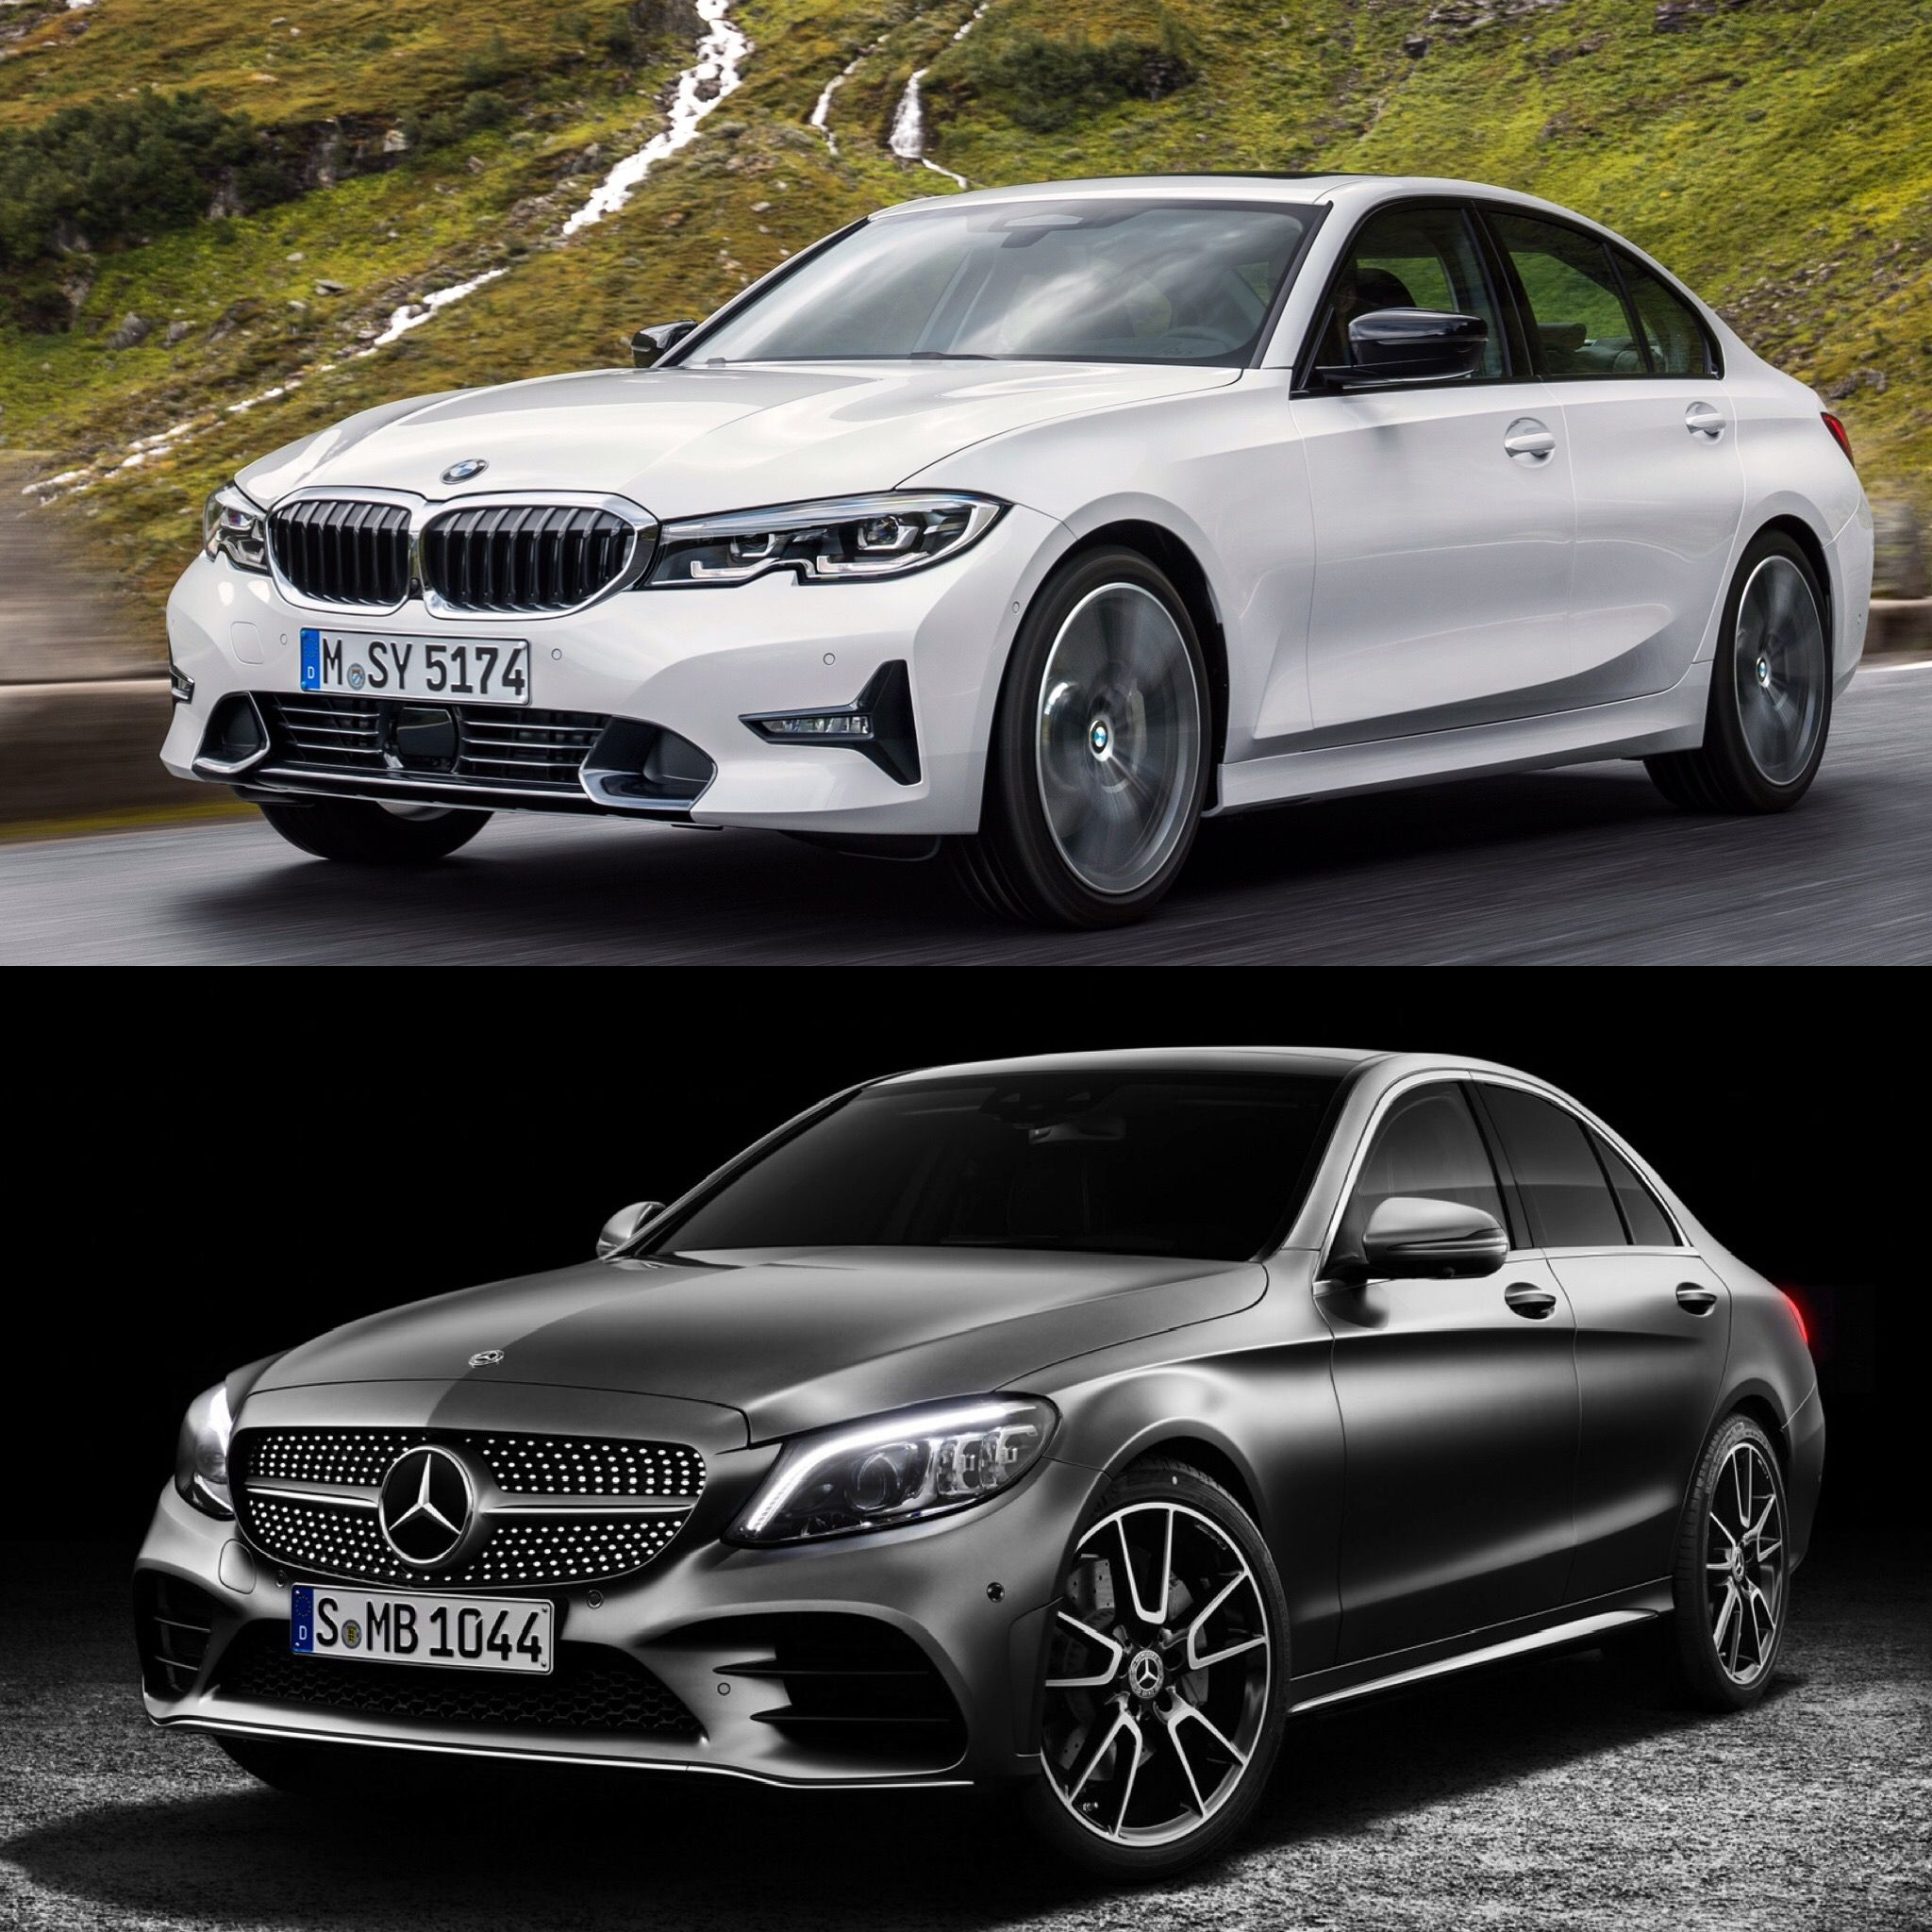 Photo Comparison G20 Bmw 3 Series Vs Mercedes Benz C Class Bmw Mercedes Benz Bmw 3 Series